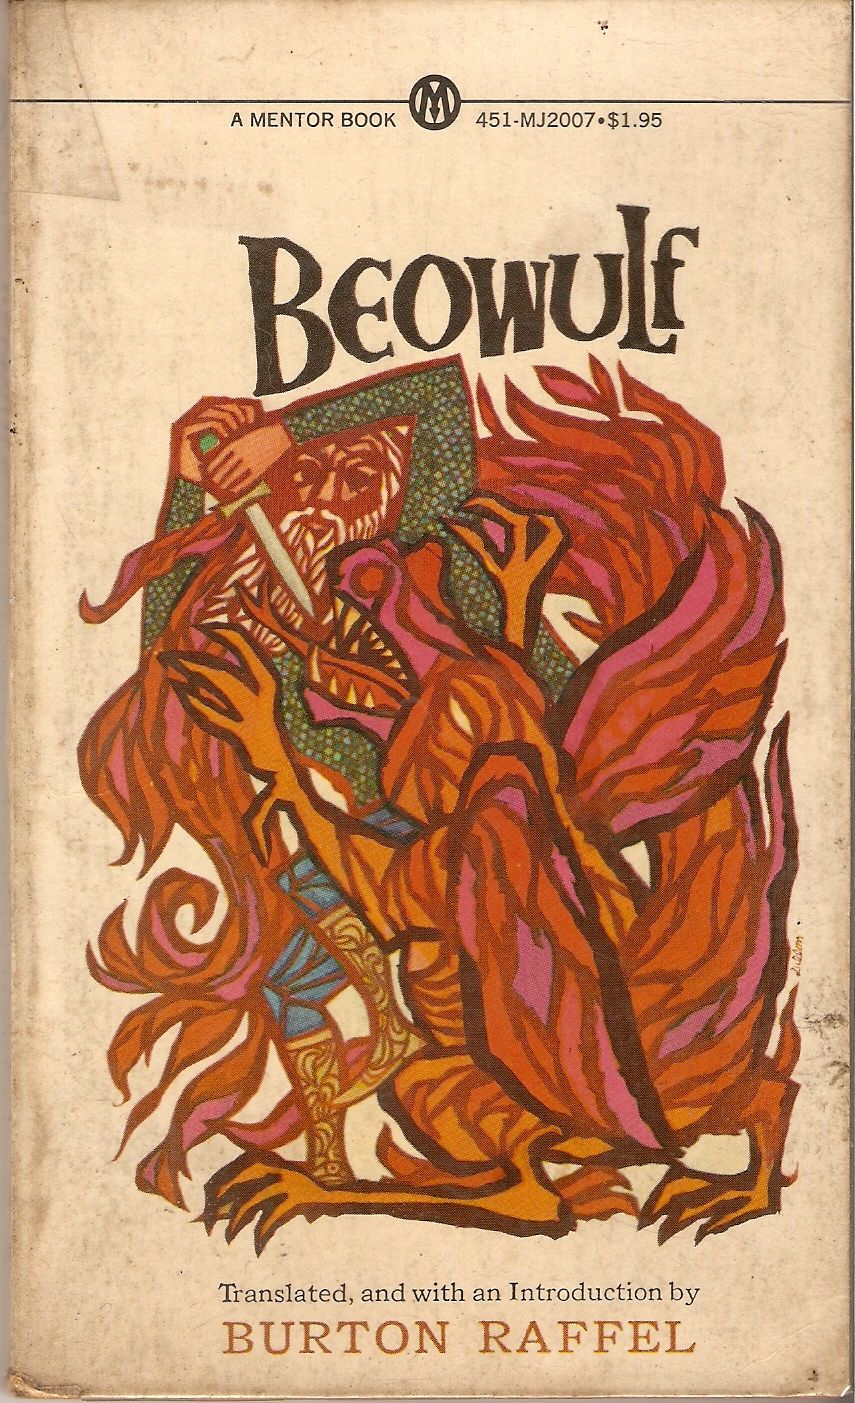 Www Bing Com1 Microsoft143 305 70: Beowulf Is A Famous Book Written During The Middle Ages